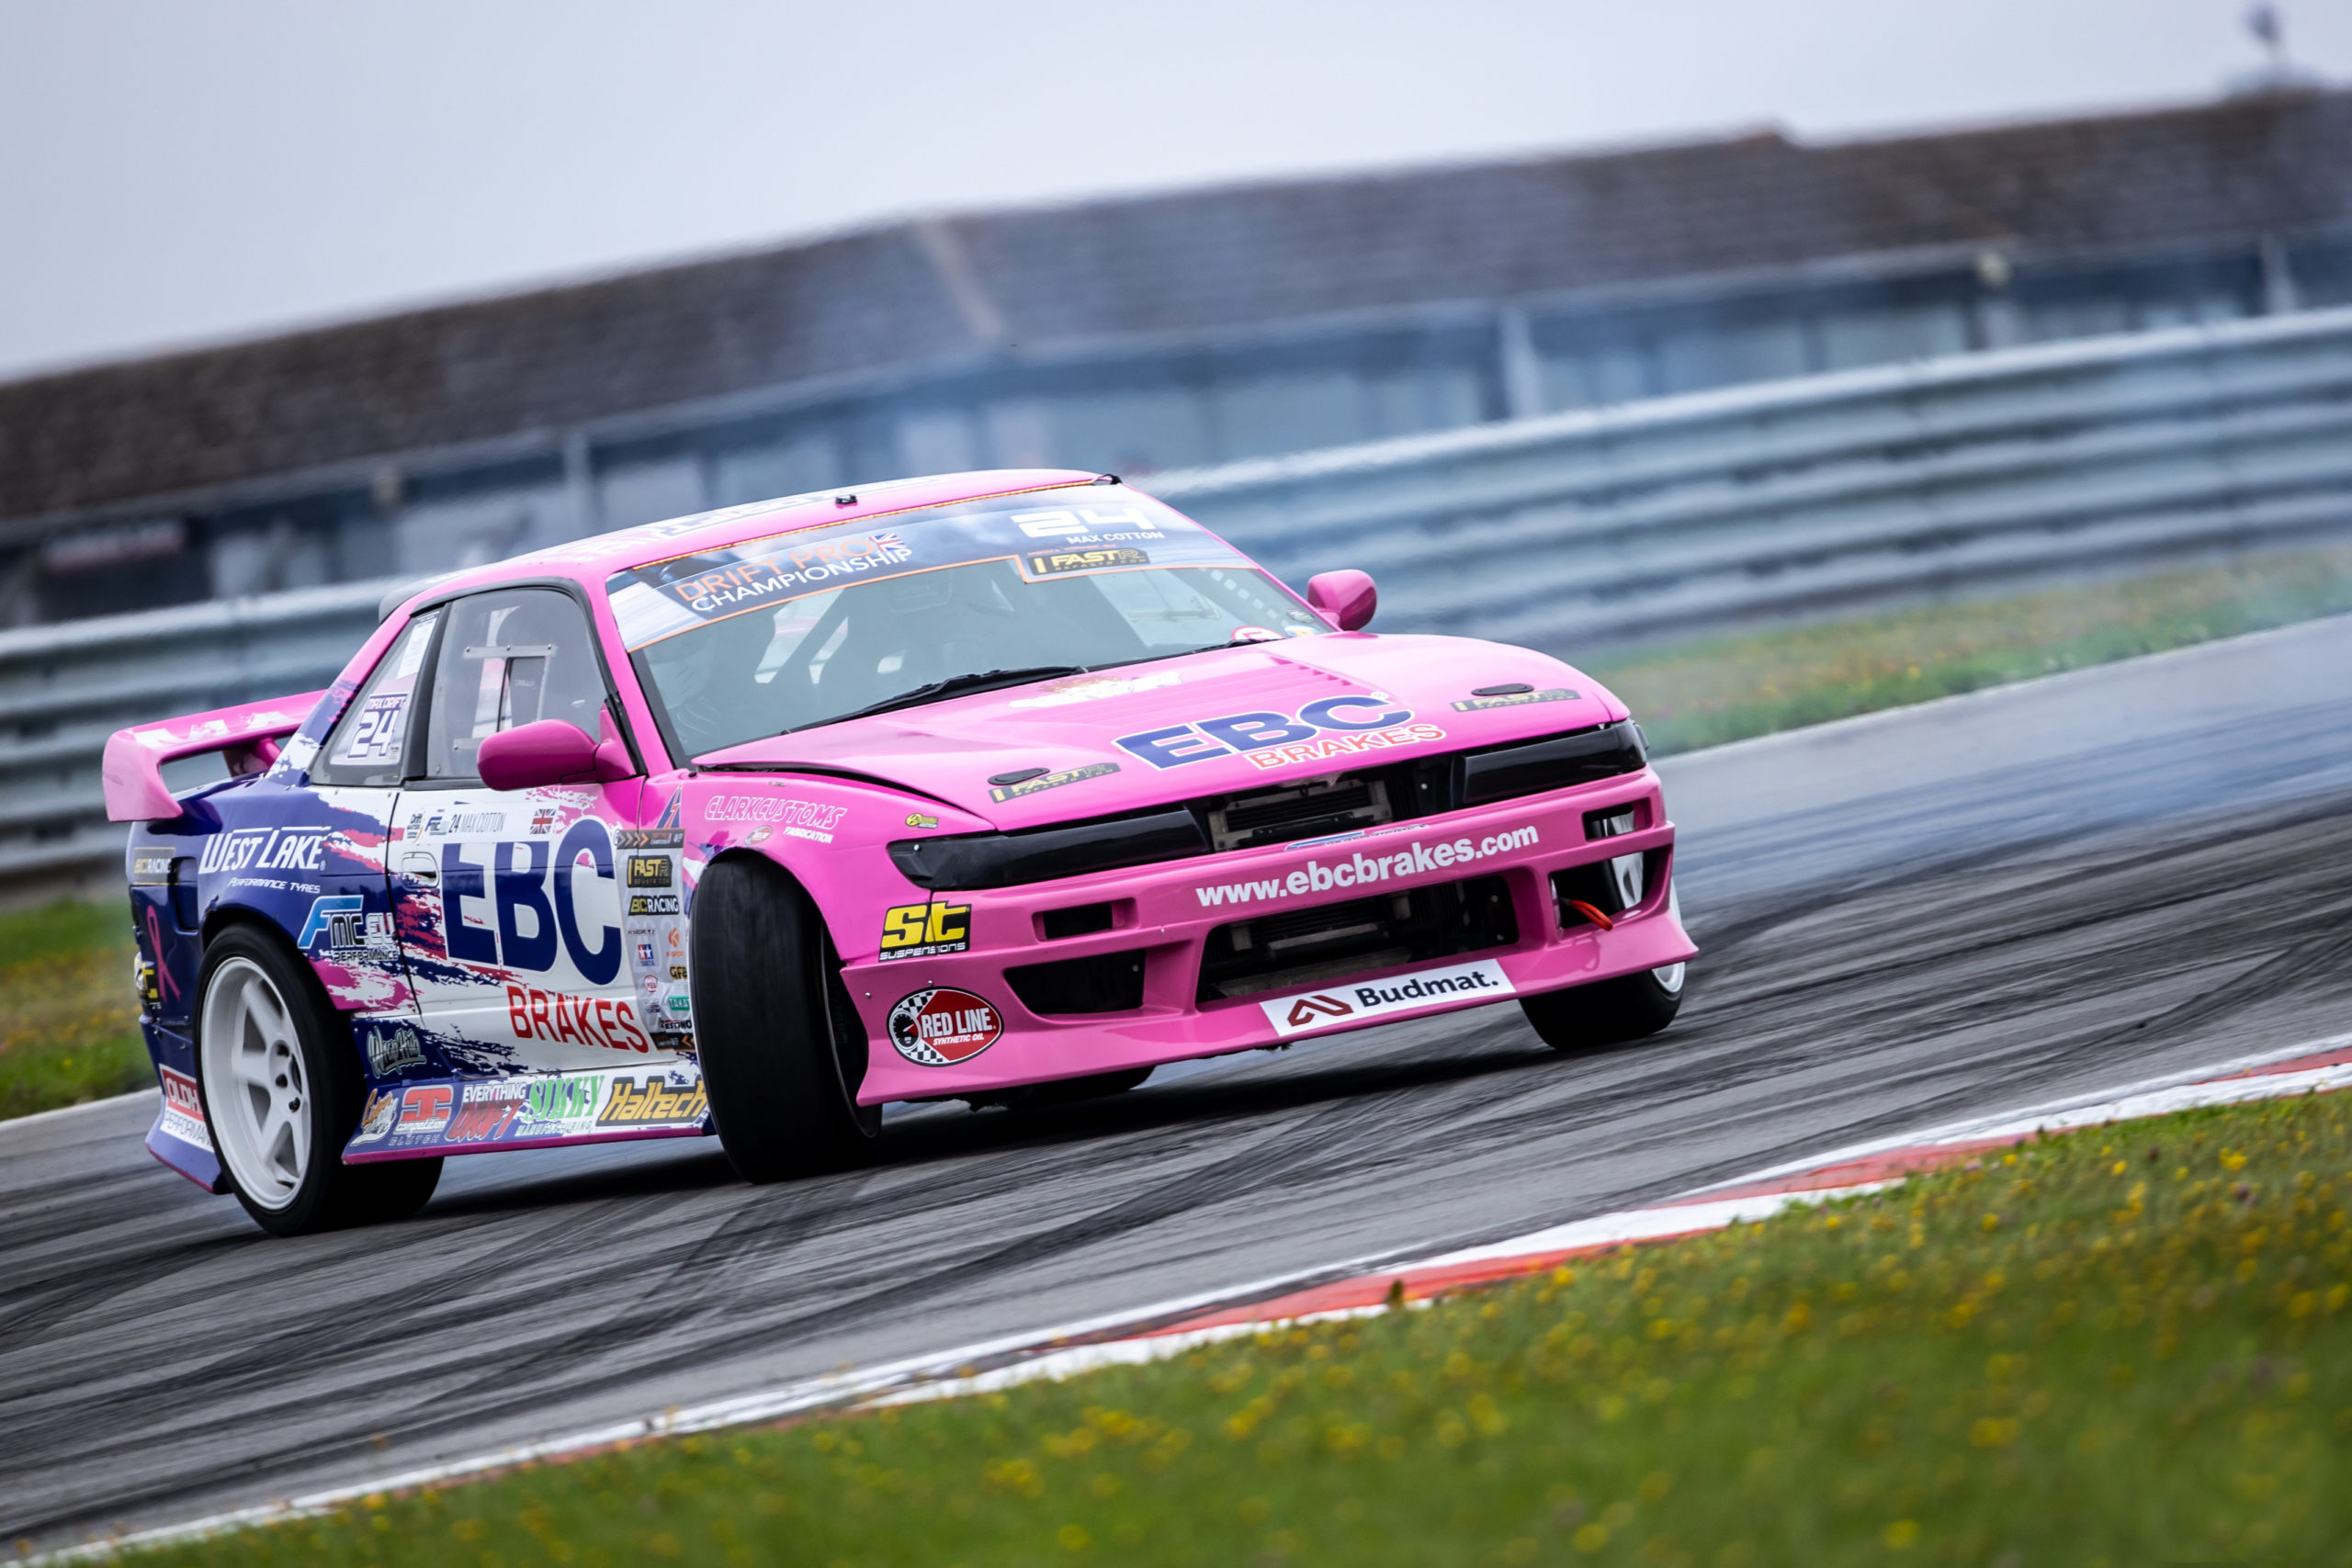 Podium Finish for Max Cotton in Second Drift Pro Round